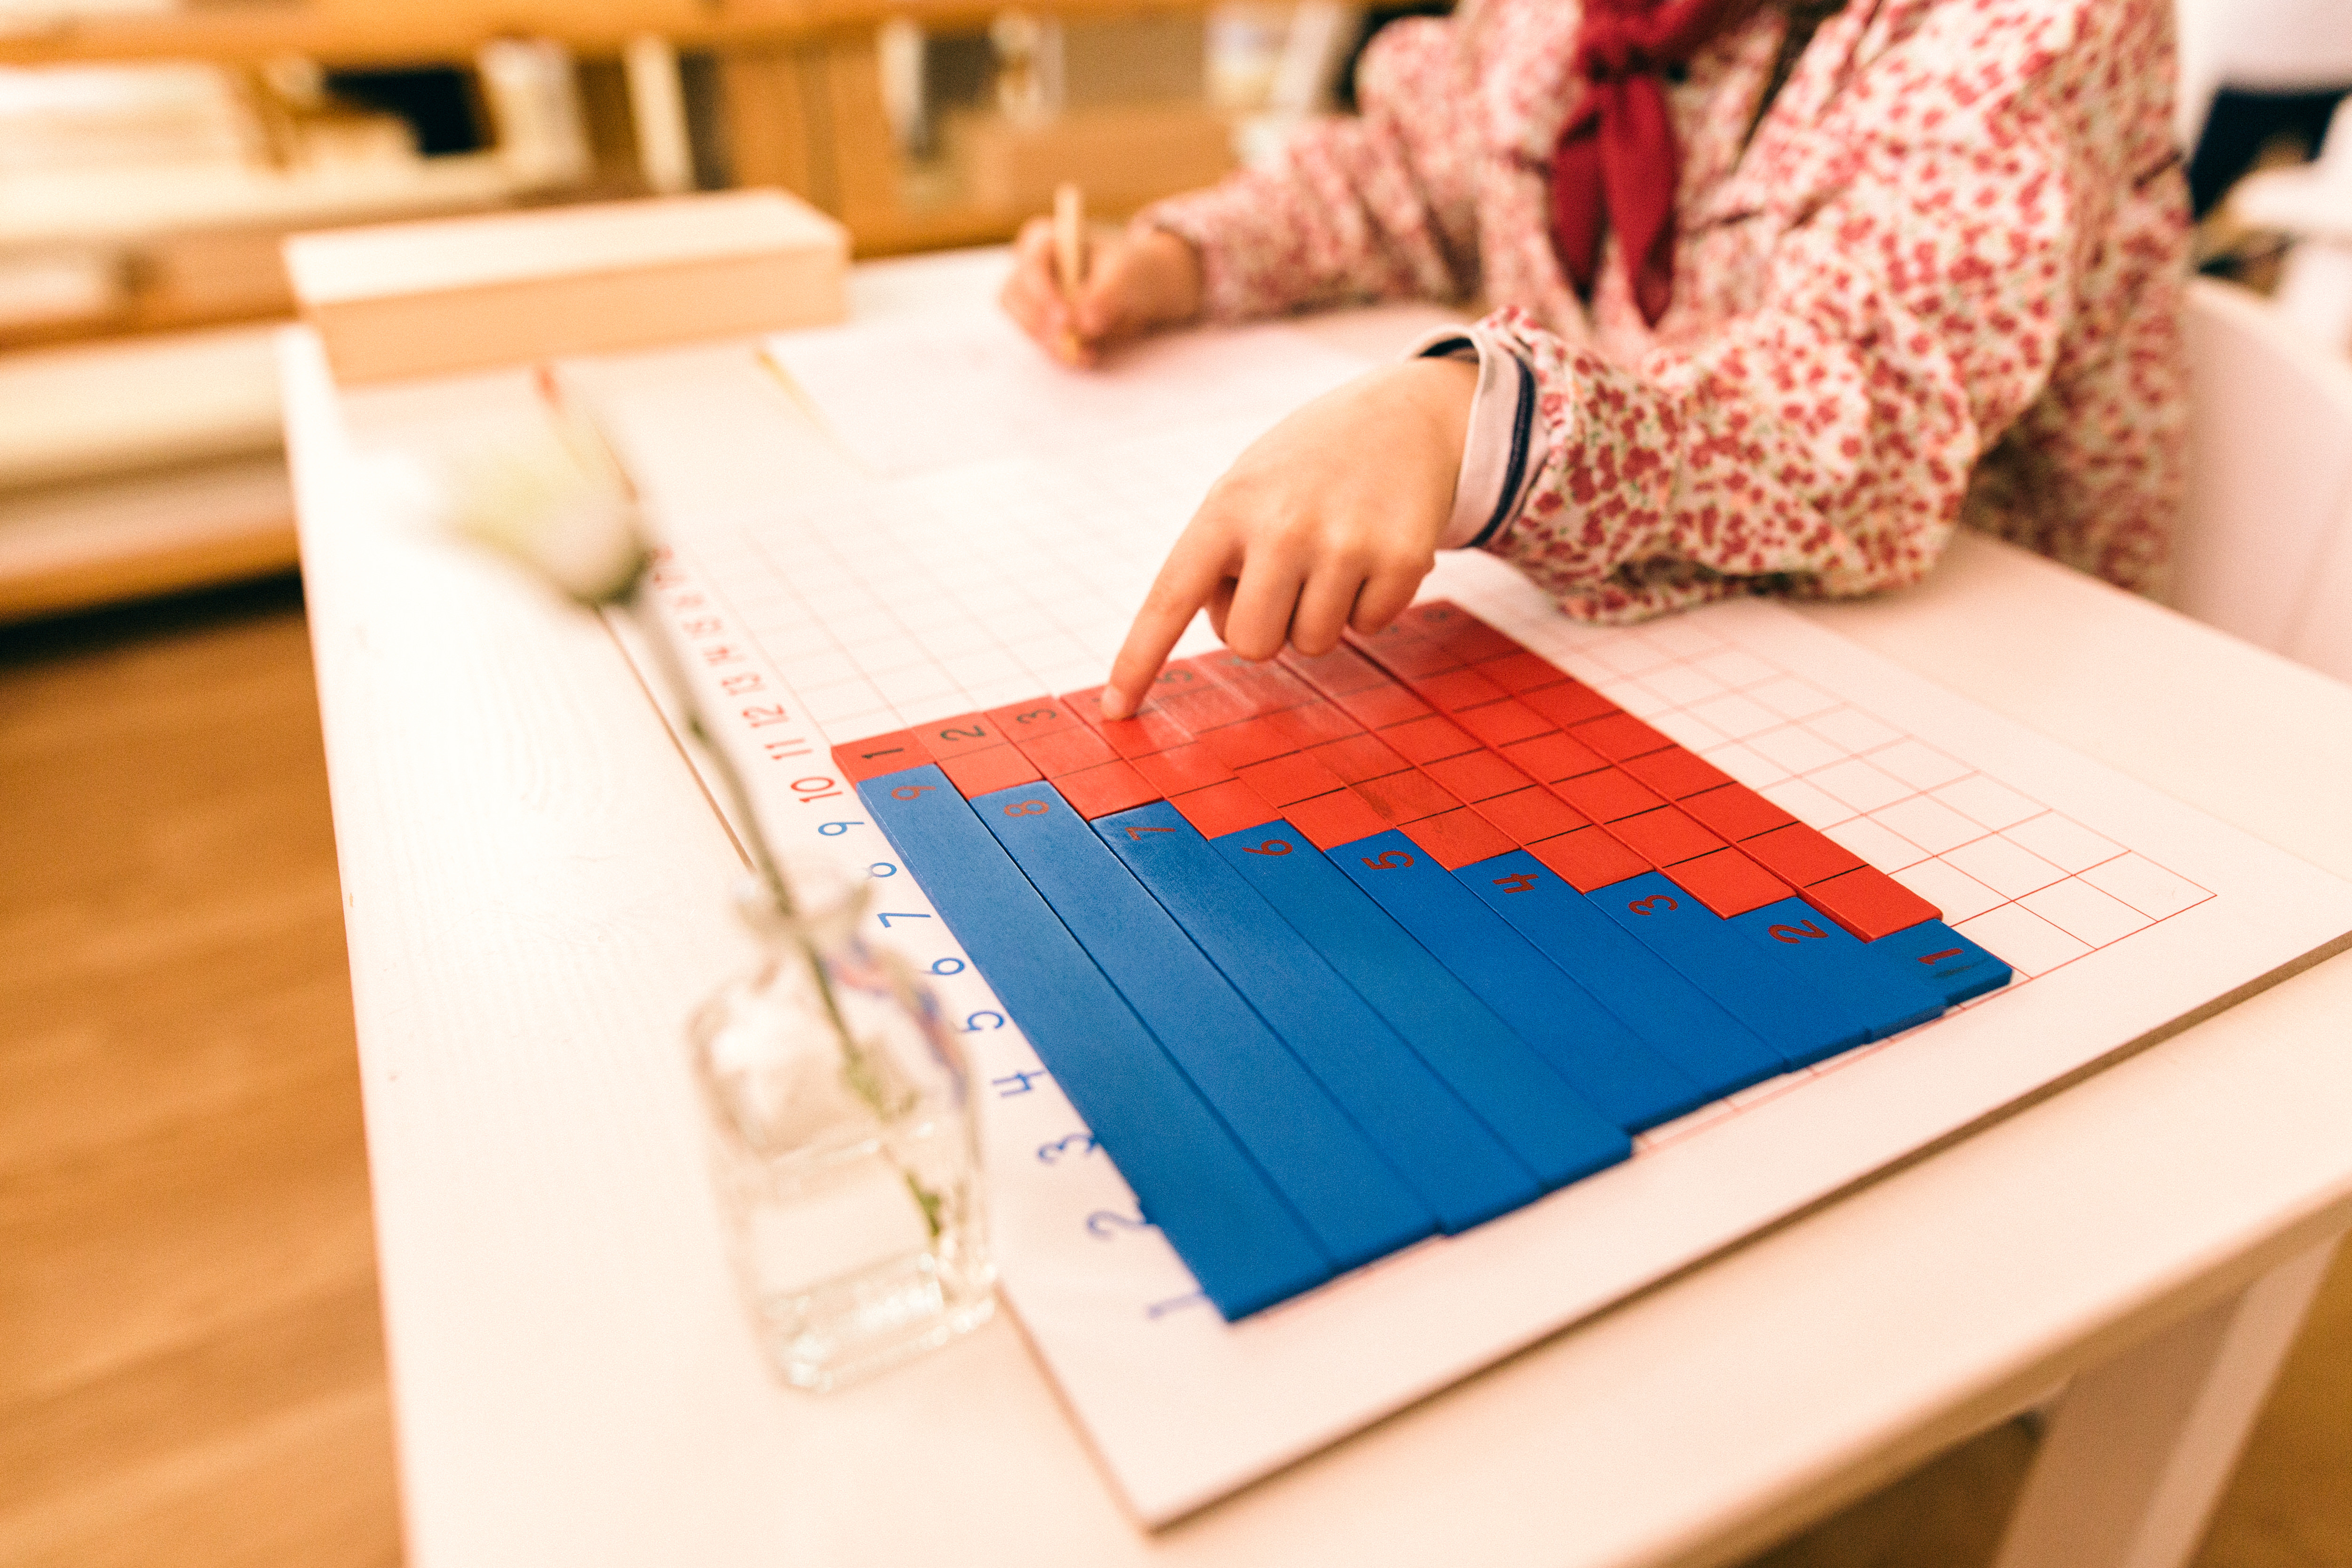 Wood montessori material, class at schoo